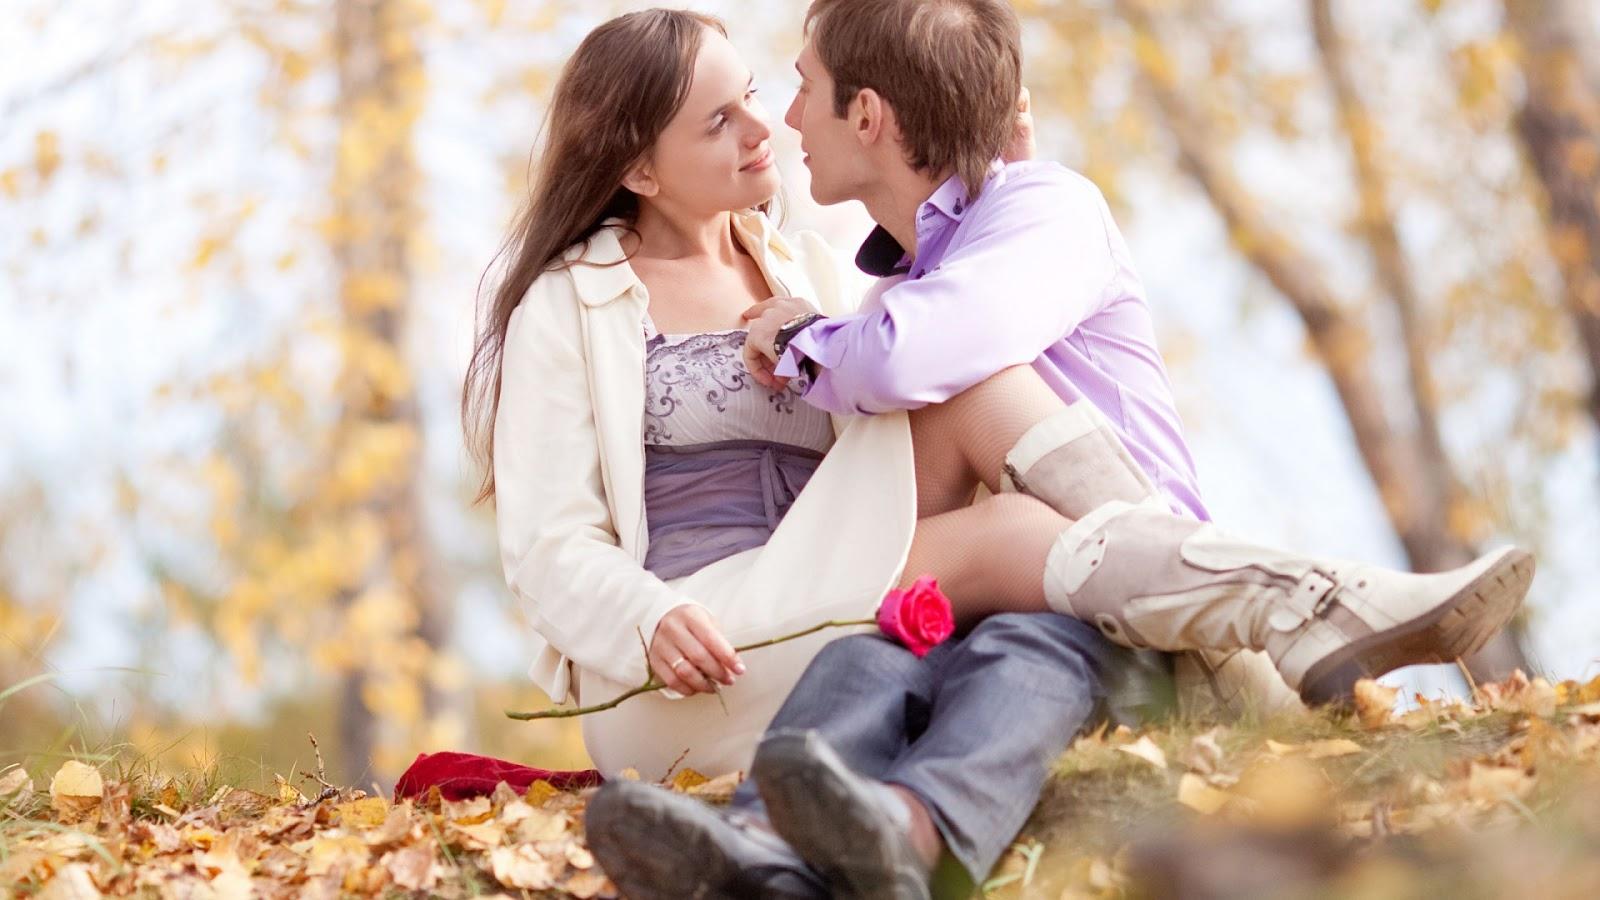 Lovely Kiss Images for Whatsapp